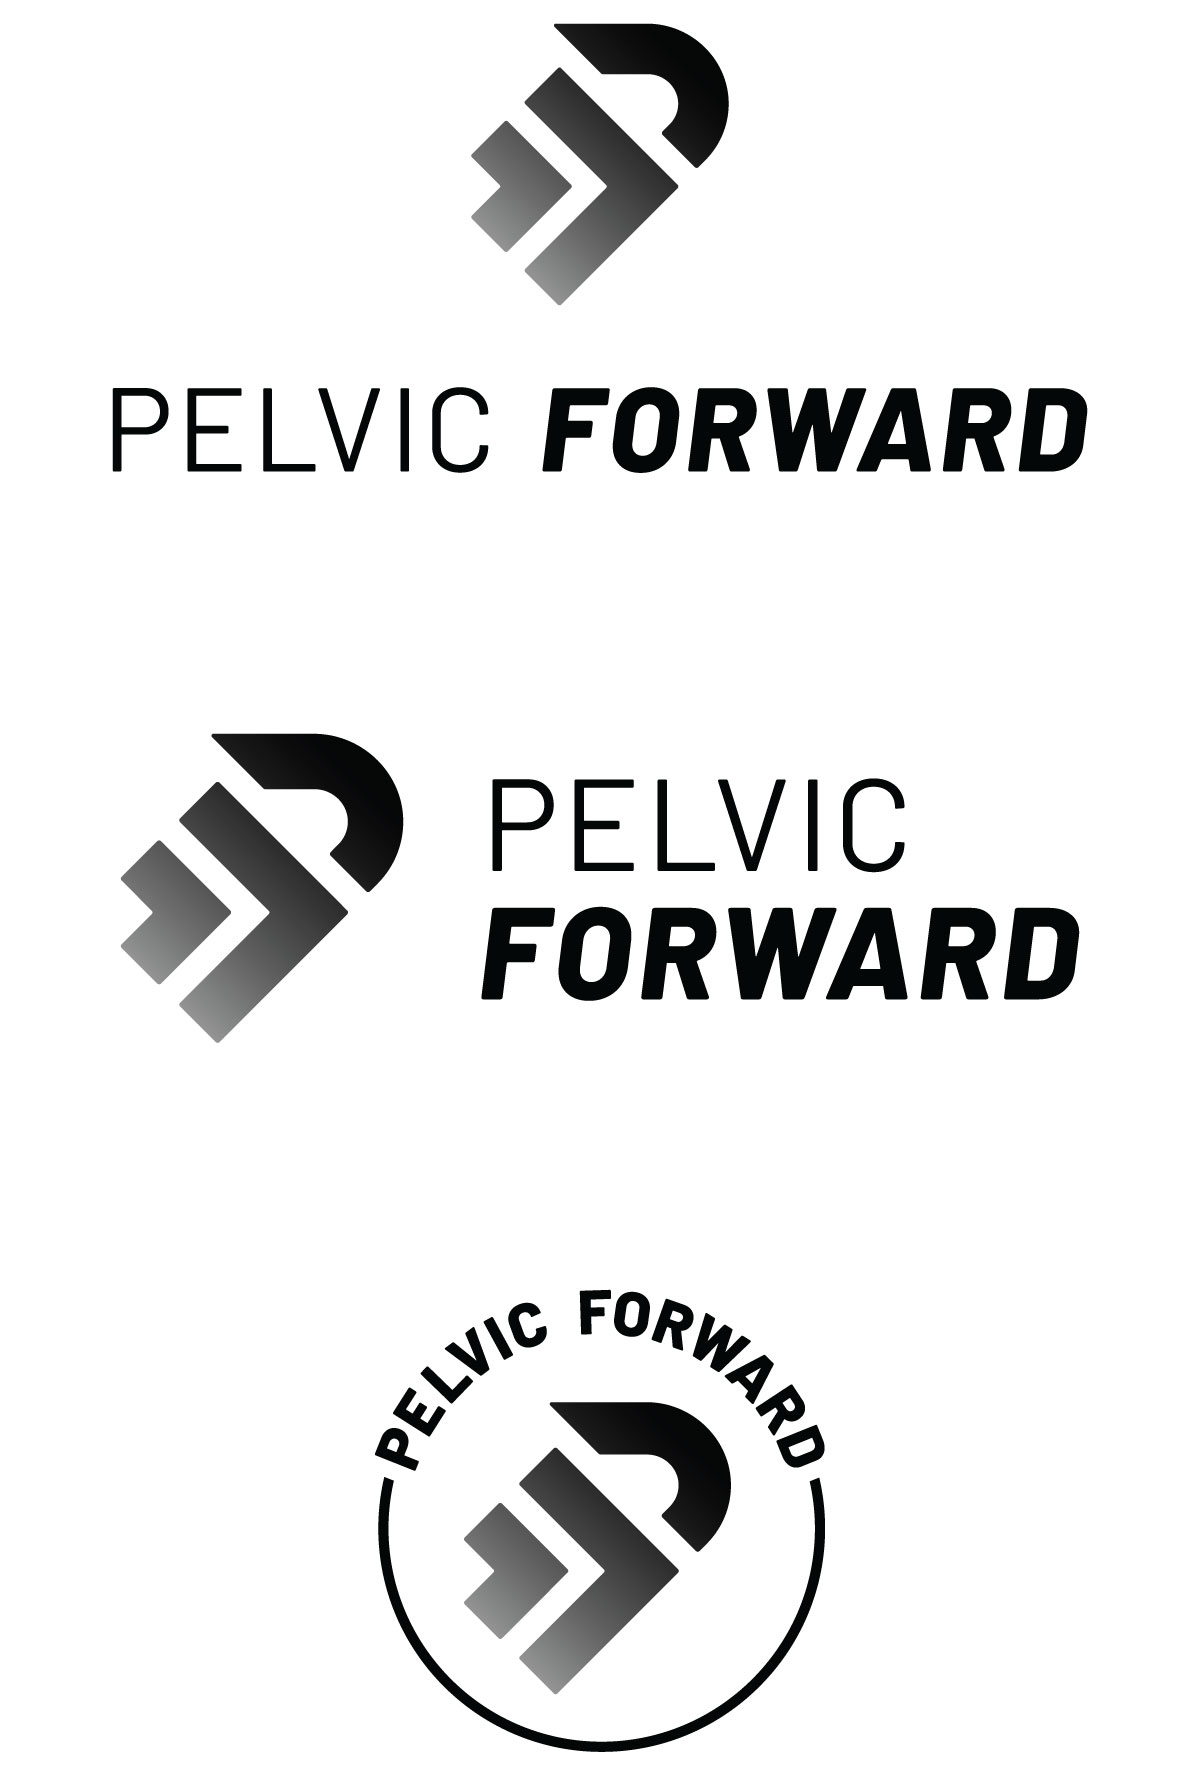 Vertical, horizontal, and round iterations ensure that a logo can be used successfully in different types of spaces.